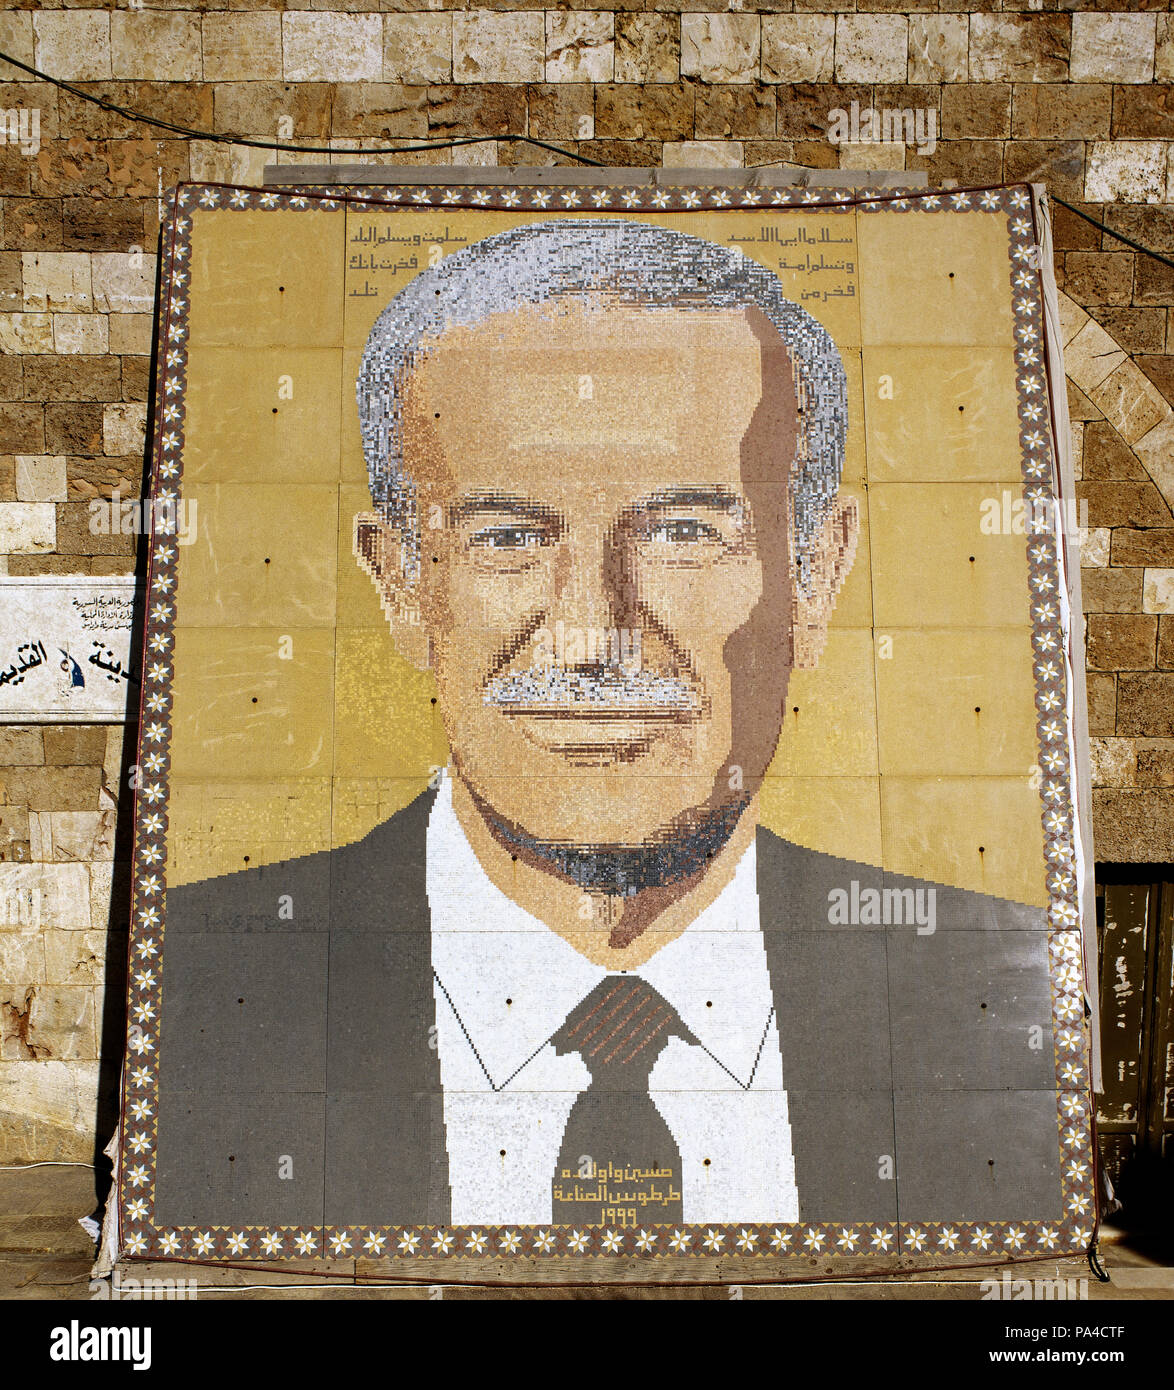 Hafez Al-Assad (1930-2000). 18th President of Syria, from 1971 to 2000. Proganda panel. Damascus. Syria. - Stock Image